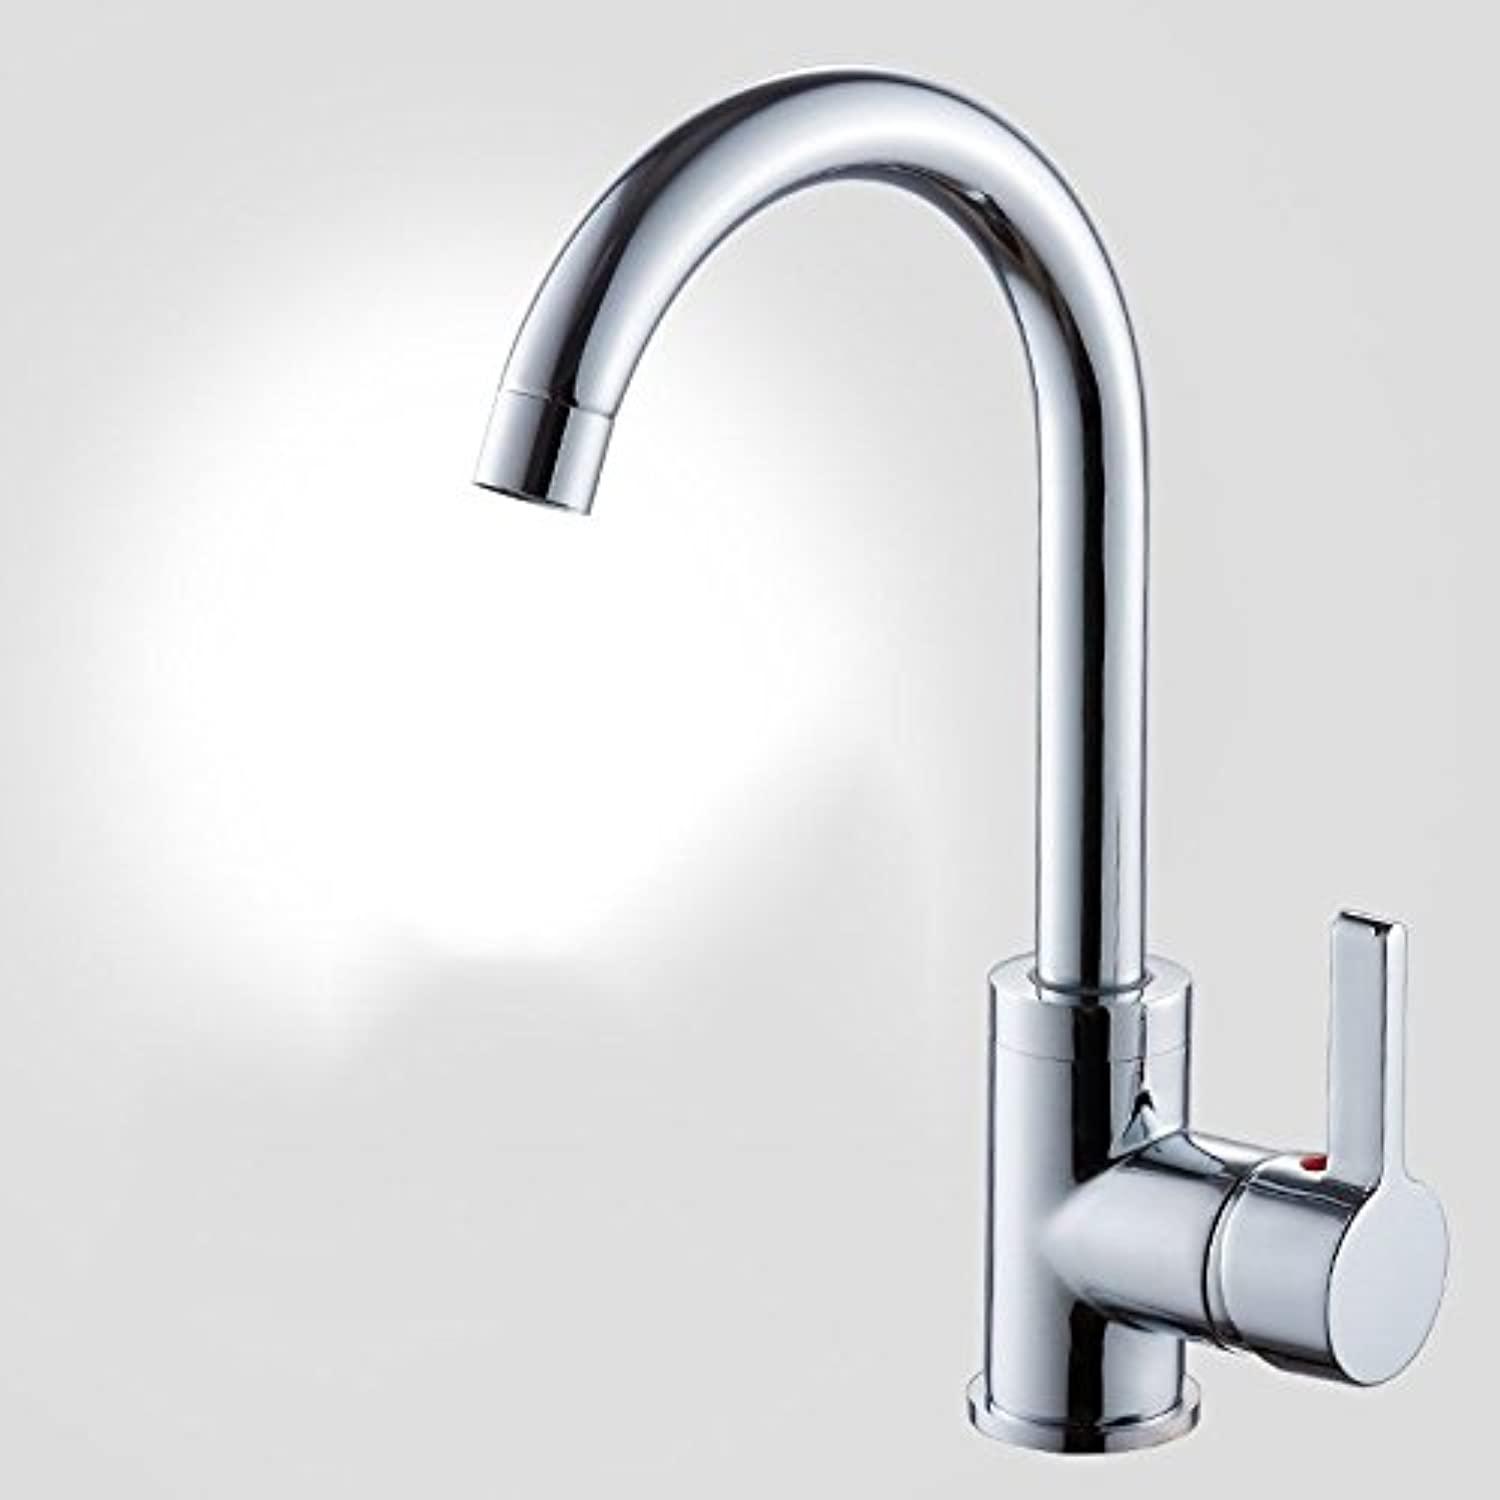 MulFaucet Faucet Water tap Taps Swivel Hoses Kitchen Copper hot and Cold redating Home Single Handle Single Hole B